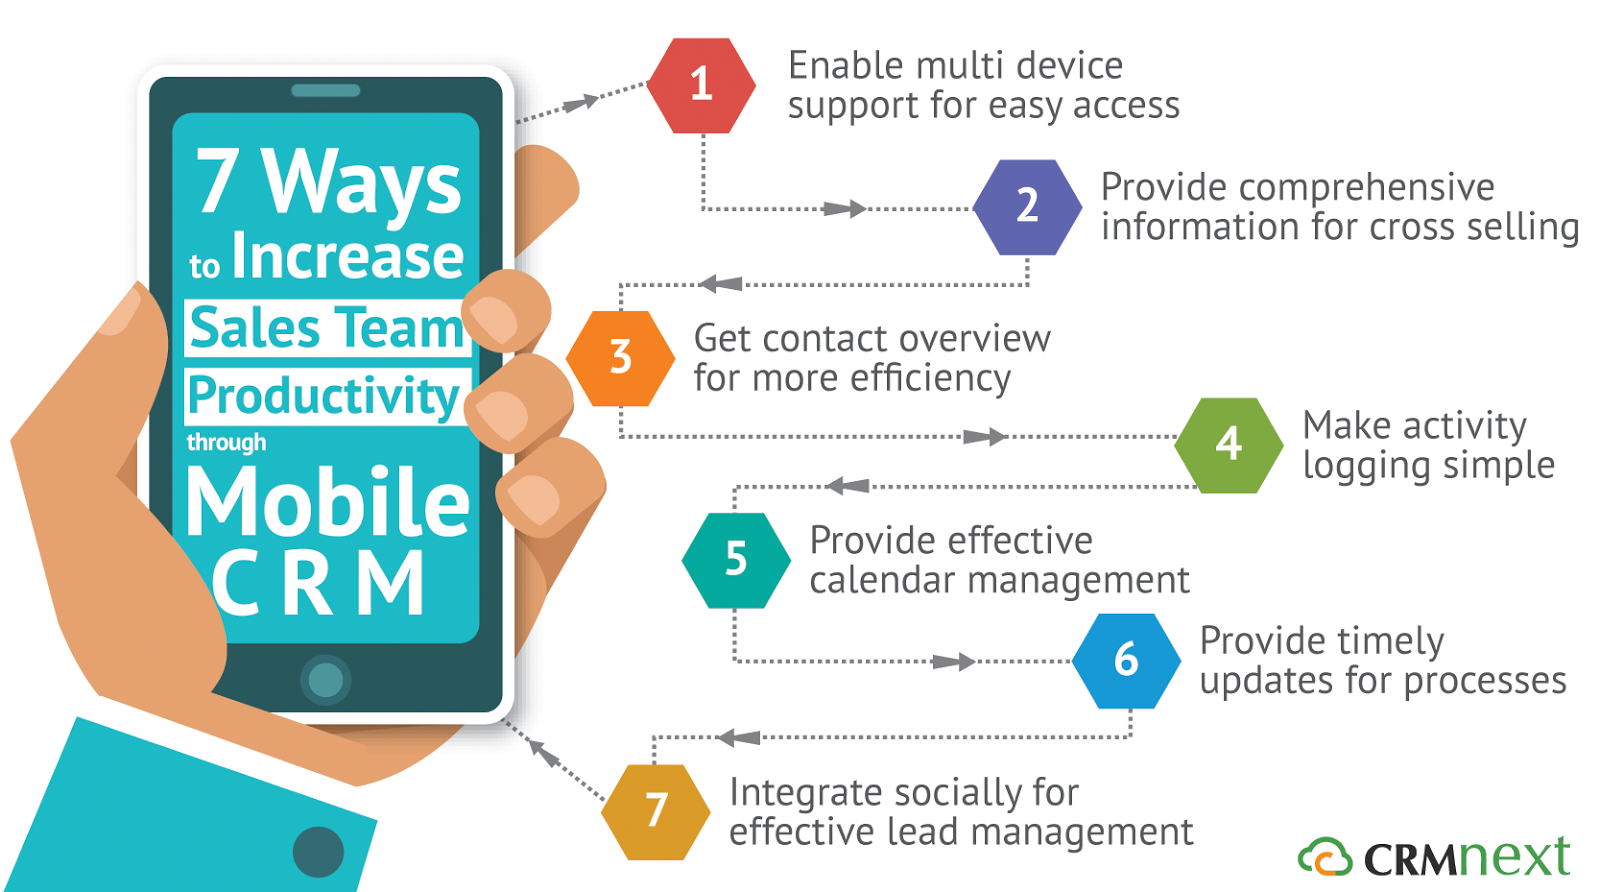 7 Ways to Increase Sales Team Productivity through Mobile CRM